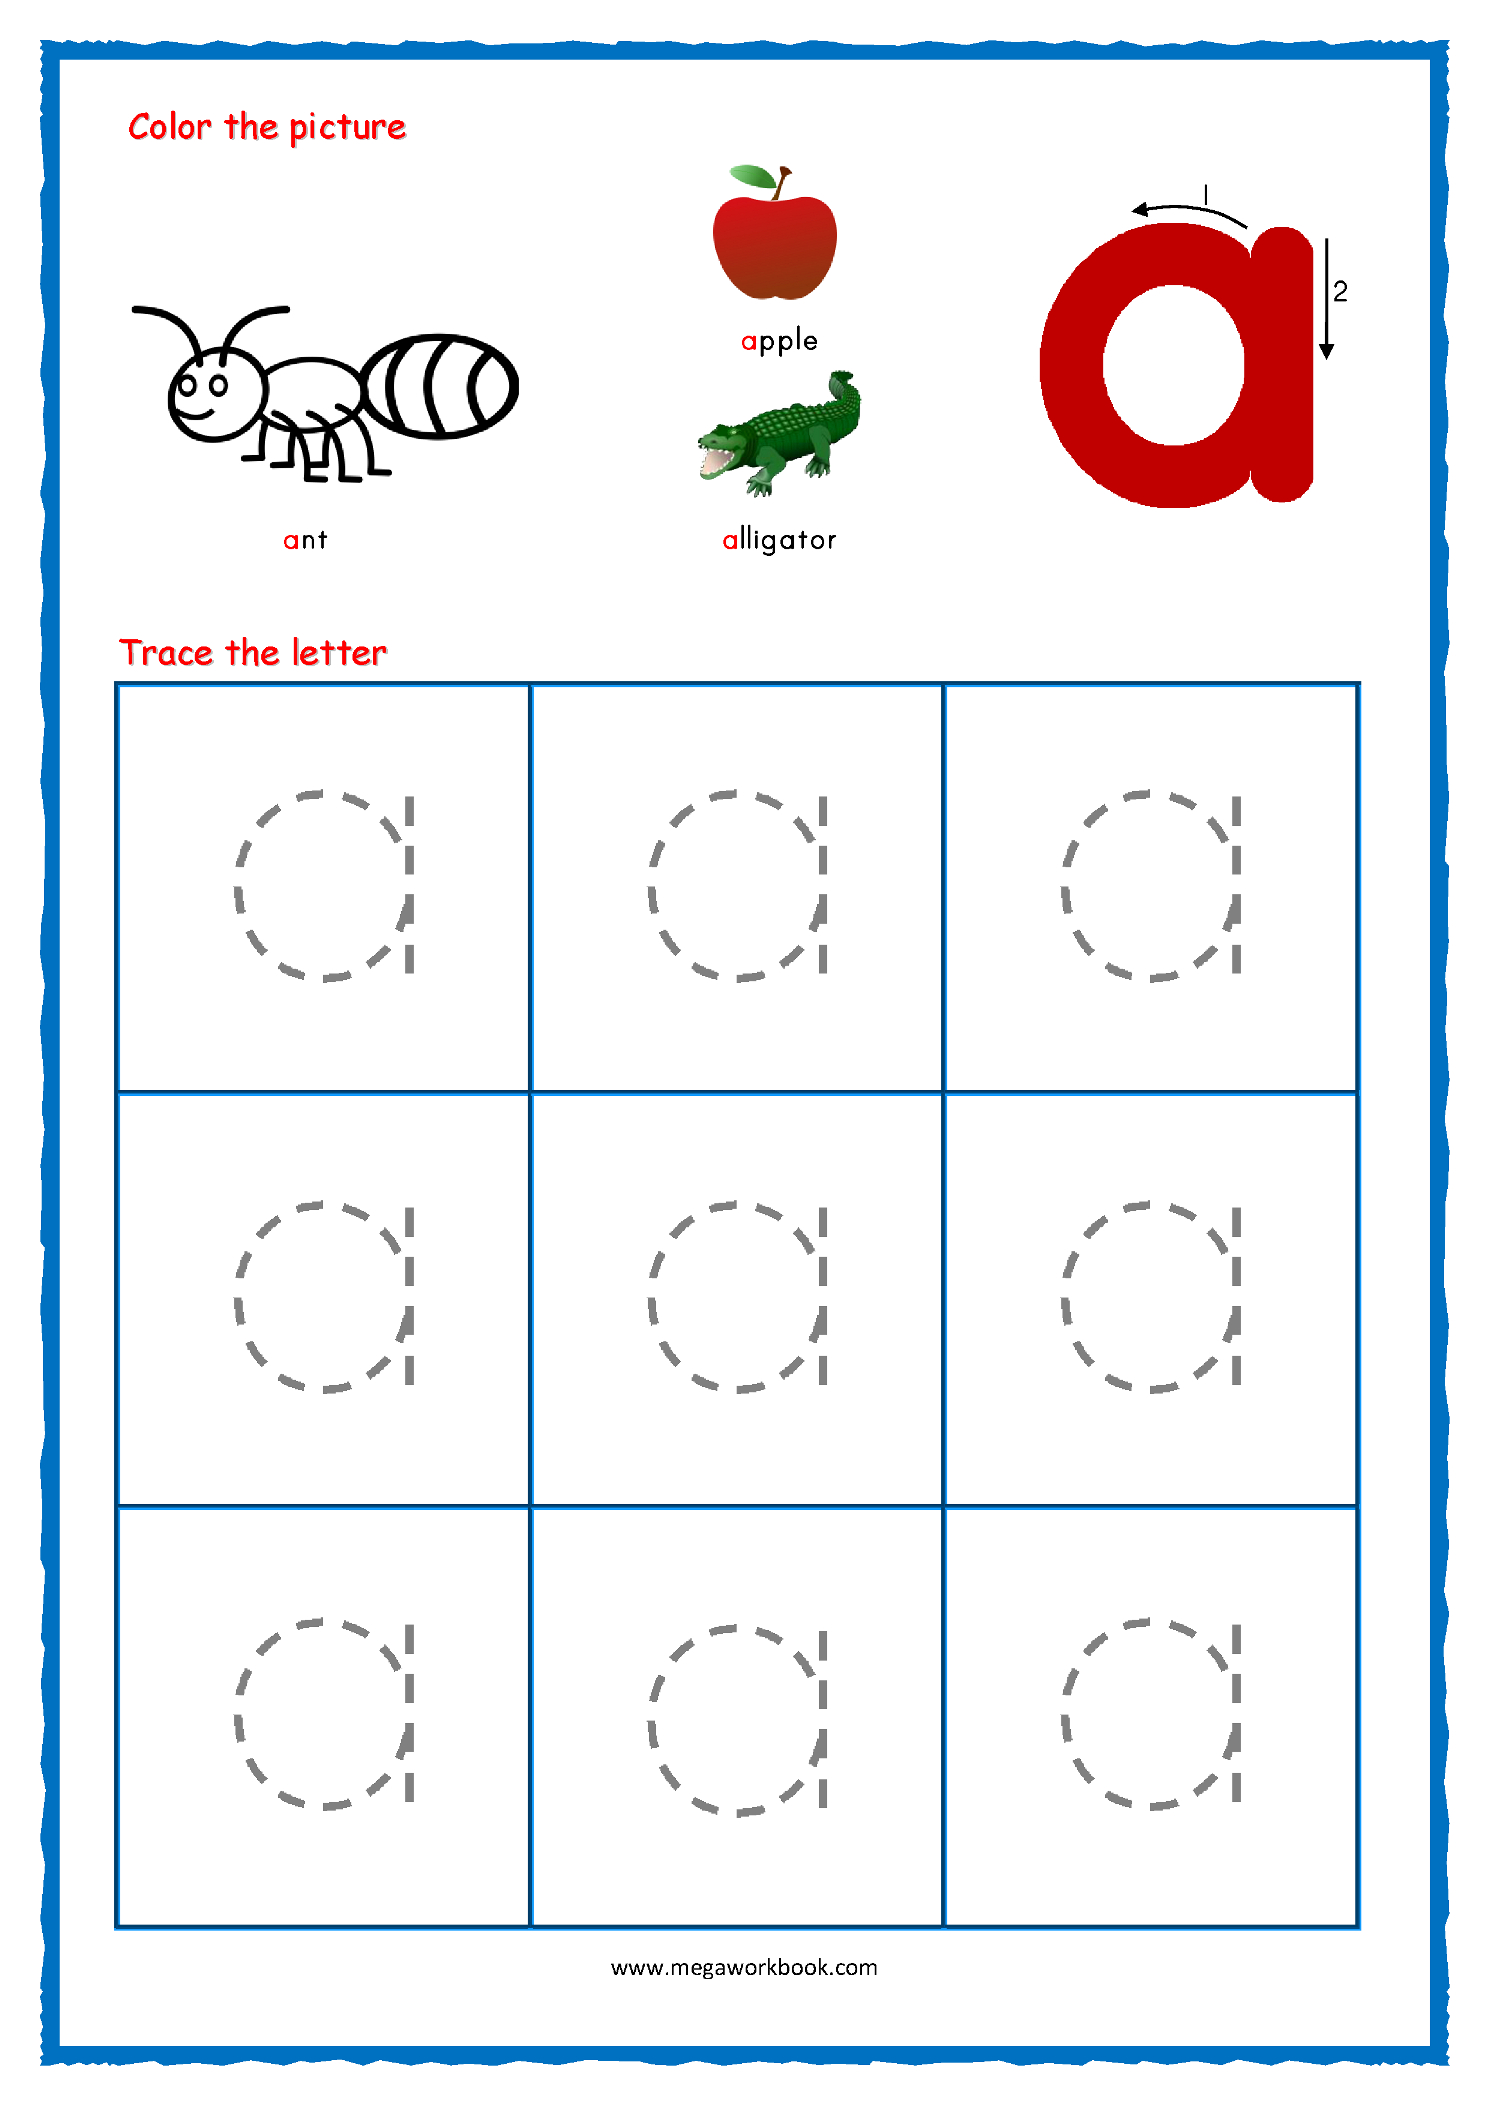 Alphabet Tracing - Small Letters - Alphabet Tracing pertaining to Alphabet Worksheets Lowercase